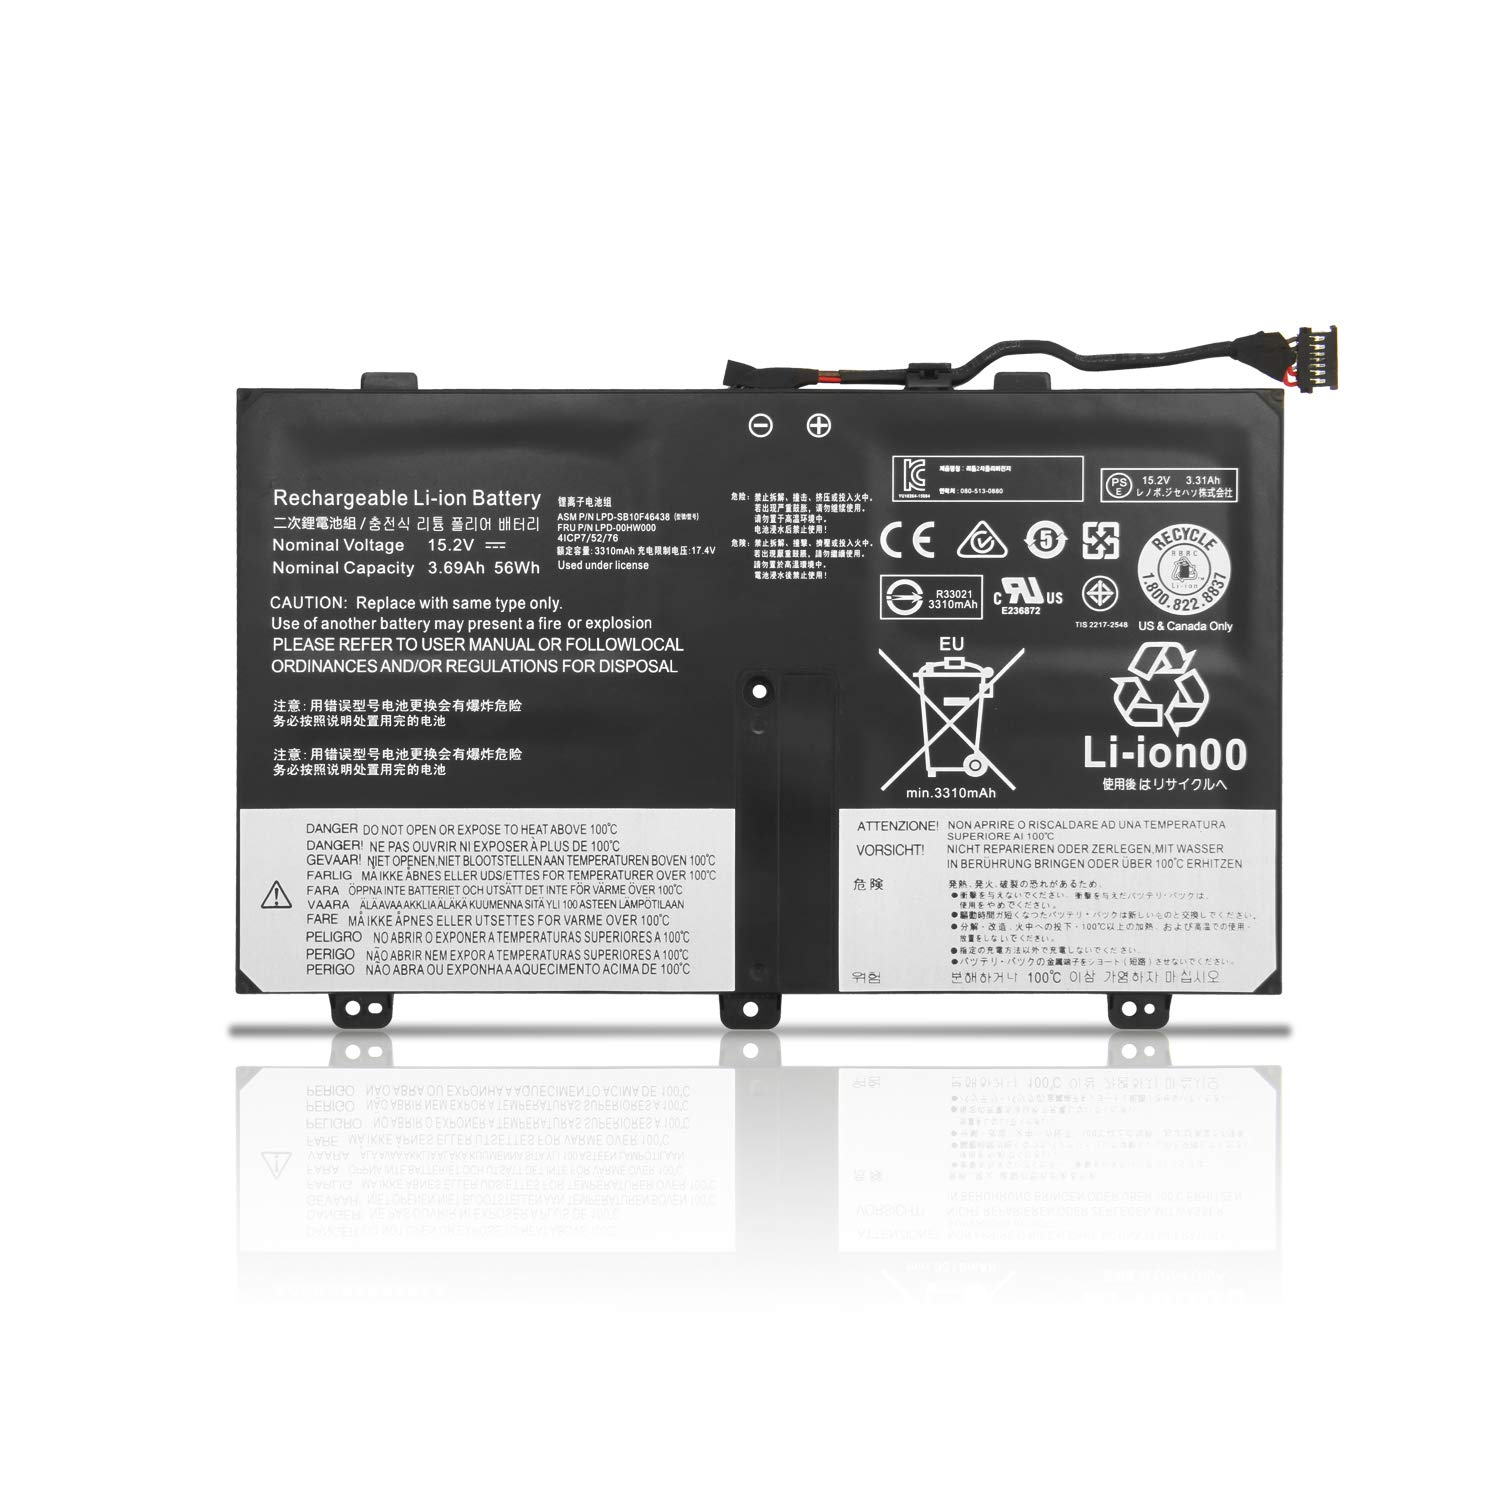 ZTHY 56Wh 00HW000 00HW001 Laptop Battery for Lenovo ThinkPad S3 Yoga 14 Series Notebook SB10F46438 SB10F46439 4ICP7/52/76 15.2V 3.69Ah